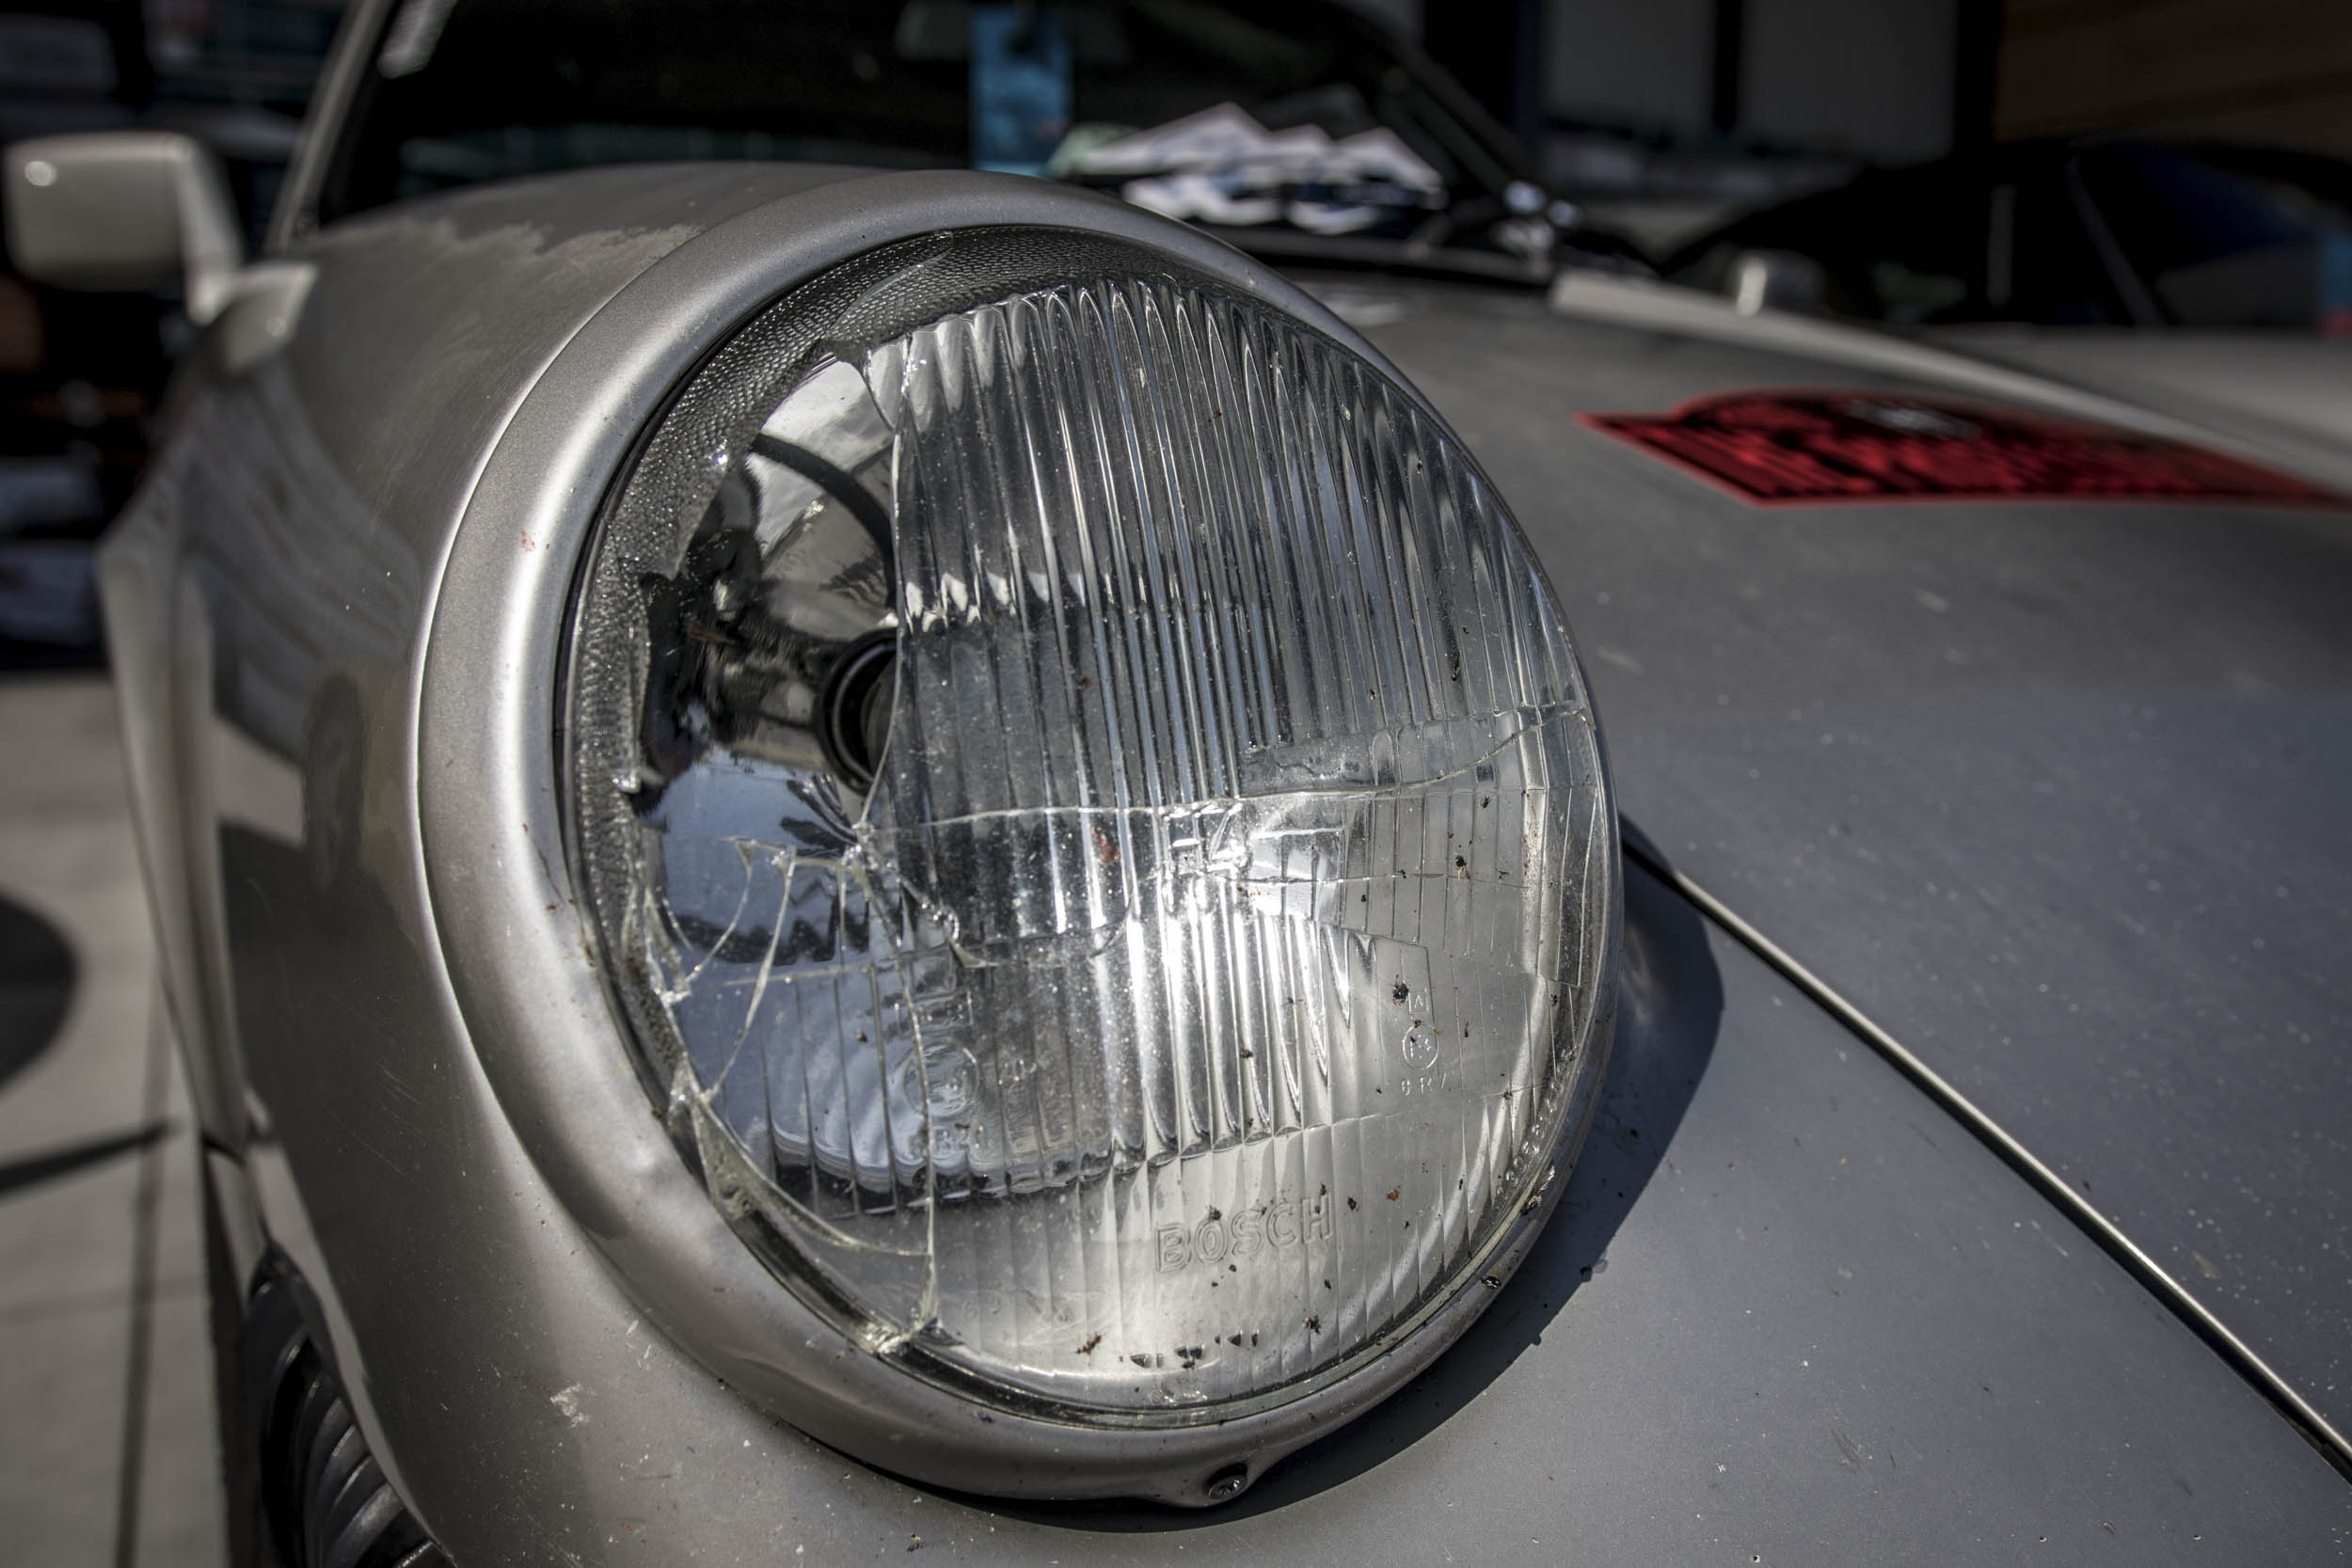 Broken 911 headlight